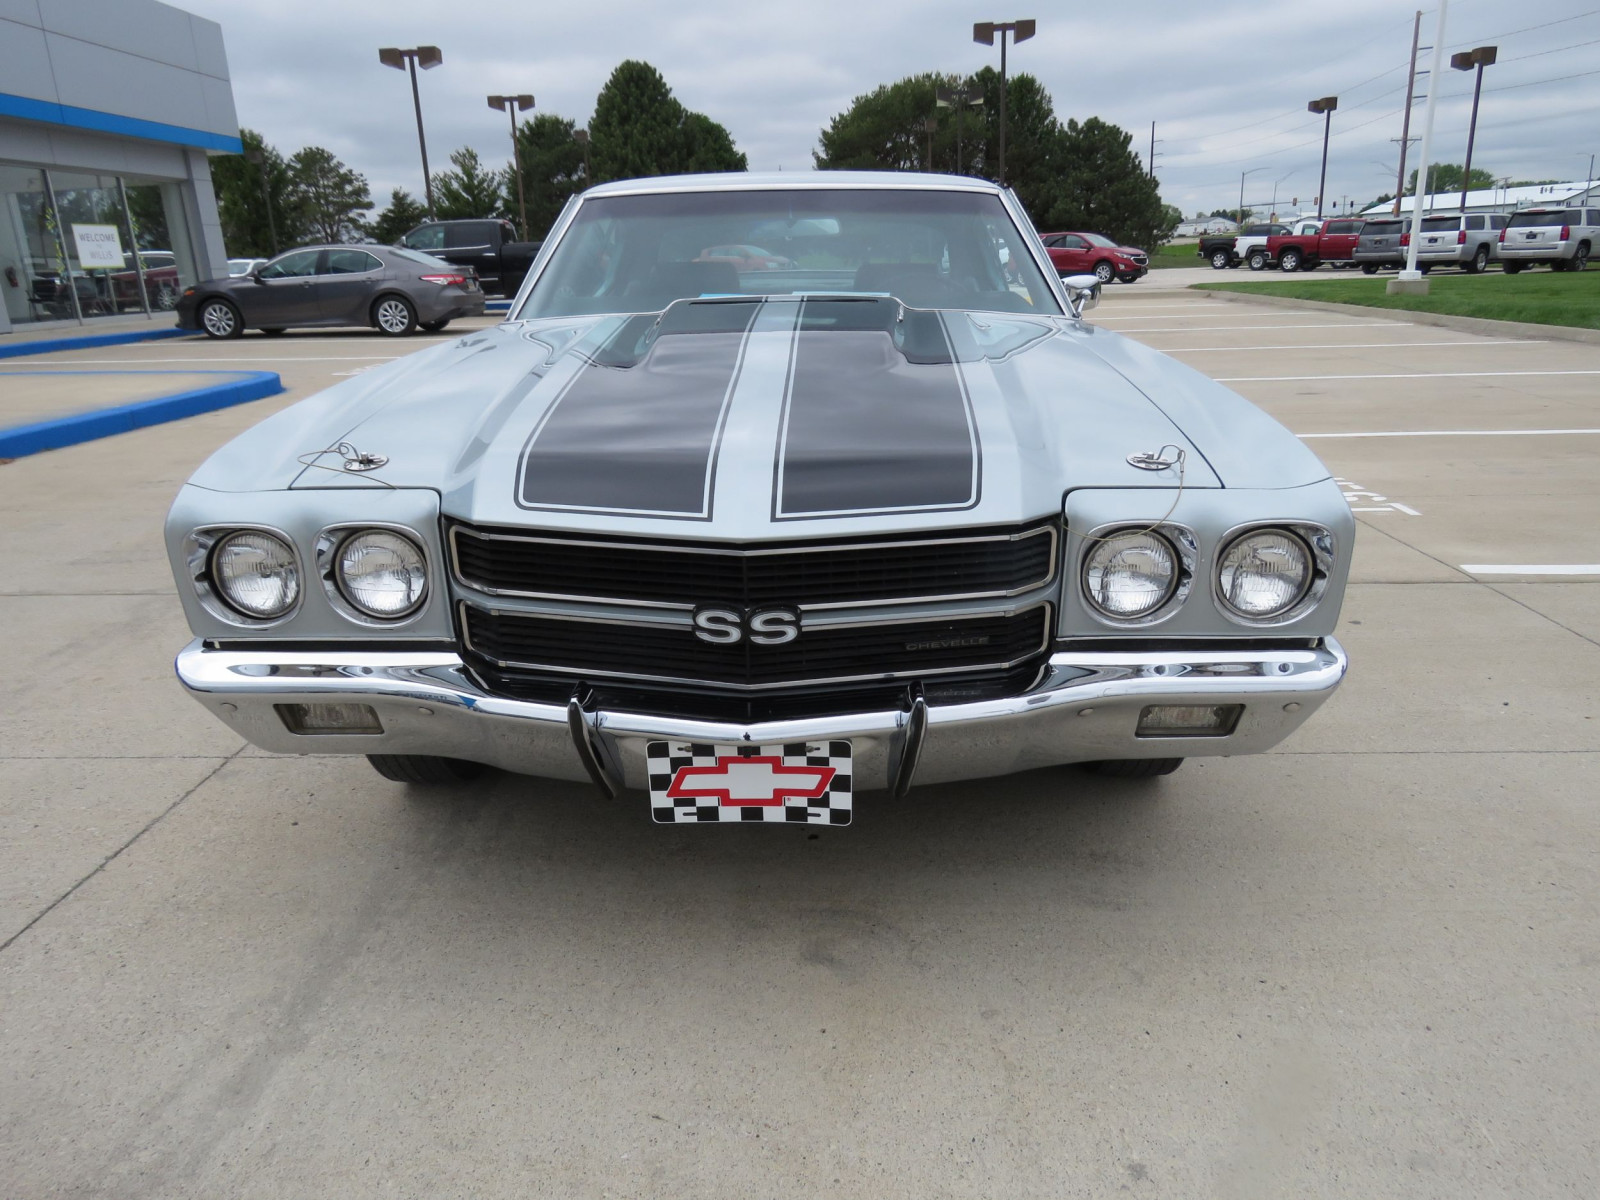 1970 Chevrolet Chevelle SS Coupe - Image 3